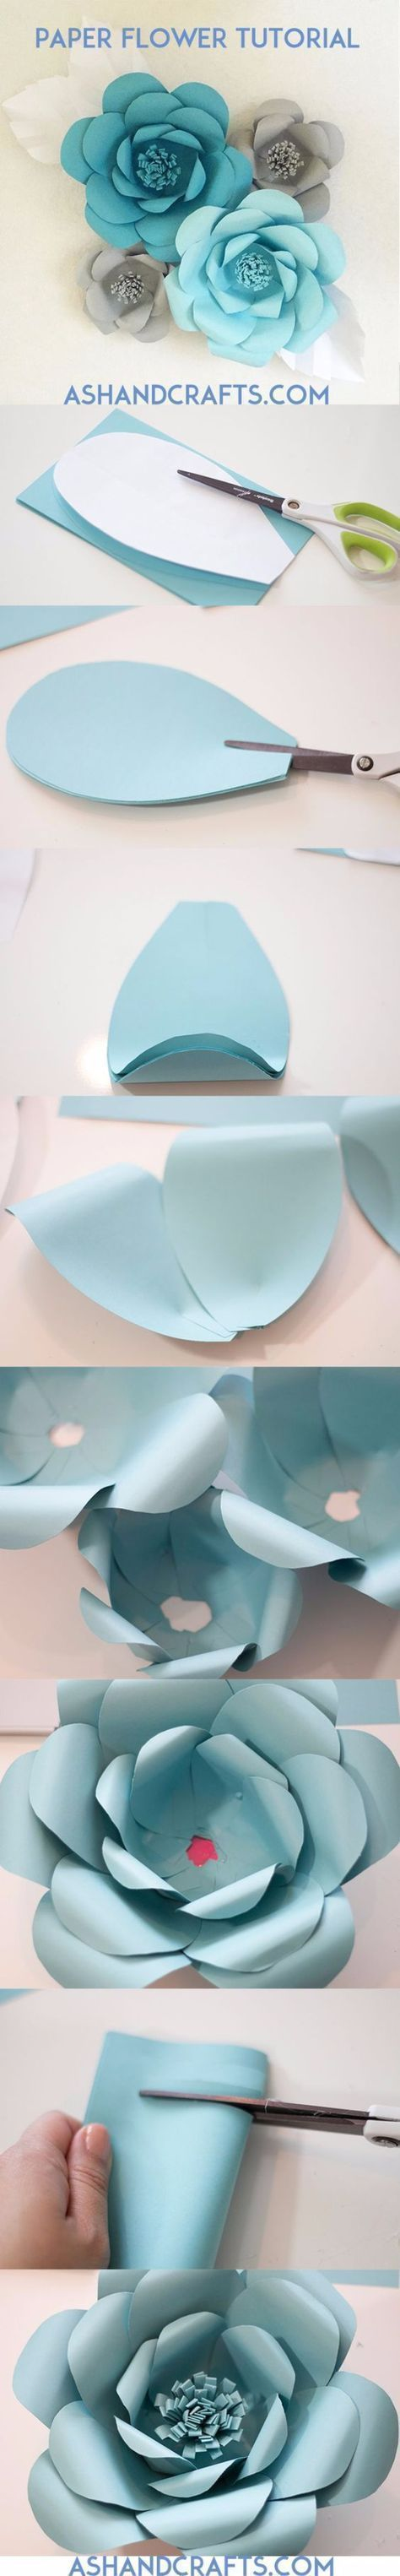 39 Easy DIY Party Decorations - Paper Flower Backdrop - Quick And Cheap Party Decors, Easy Ideas For DIY Party Decor, Birthday Decorations, Budget Do It Yourself Party Decorations http://diyjoy.com/easy-diy-party-decorations #diypartydecorationsbudget #diypartydecors #diypartyeasy #diypartydecorationspaper